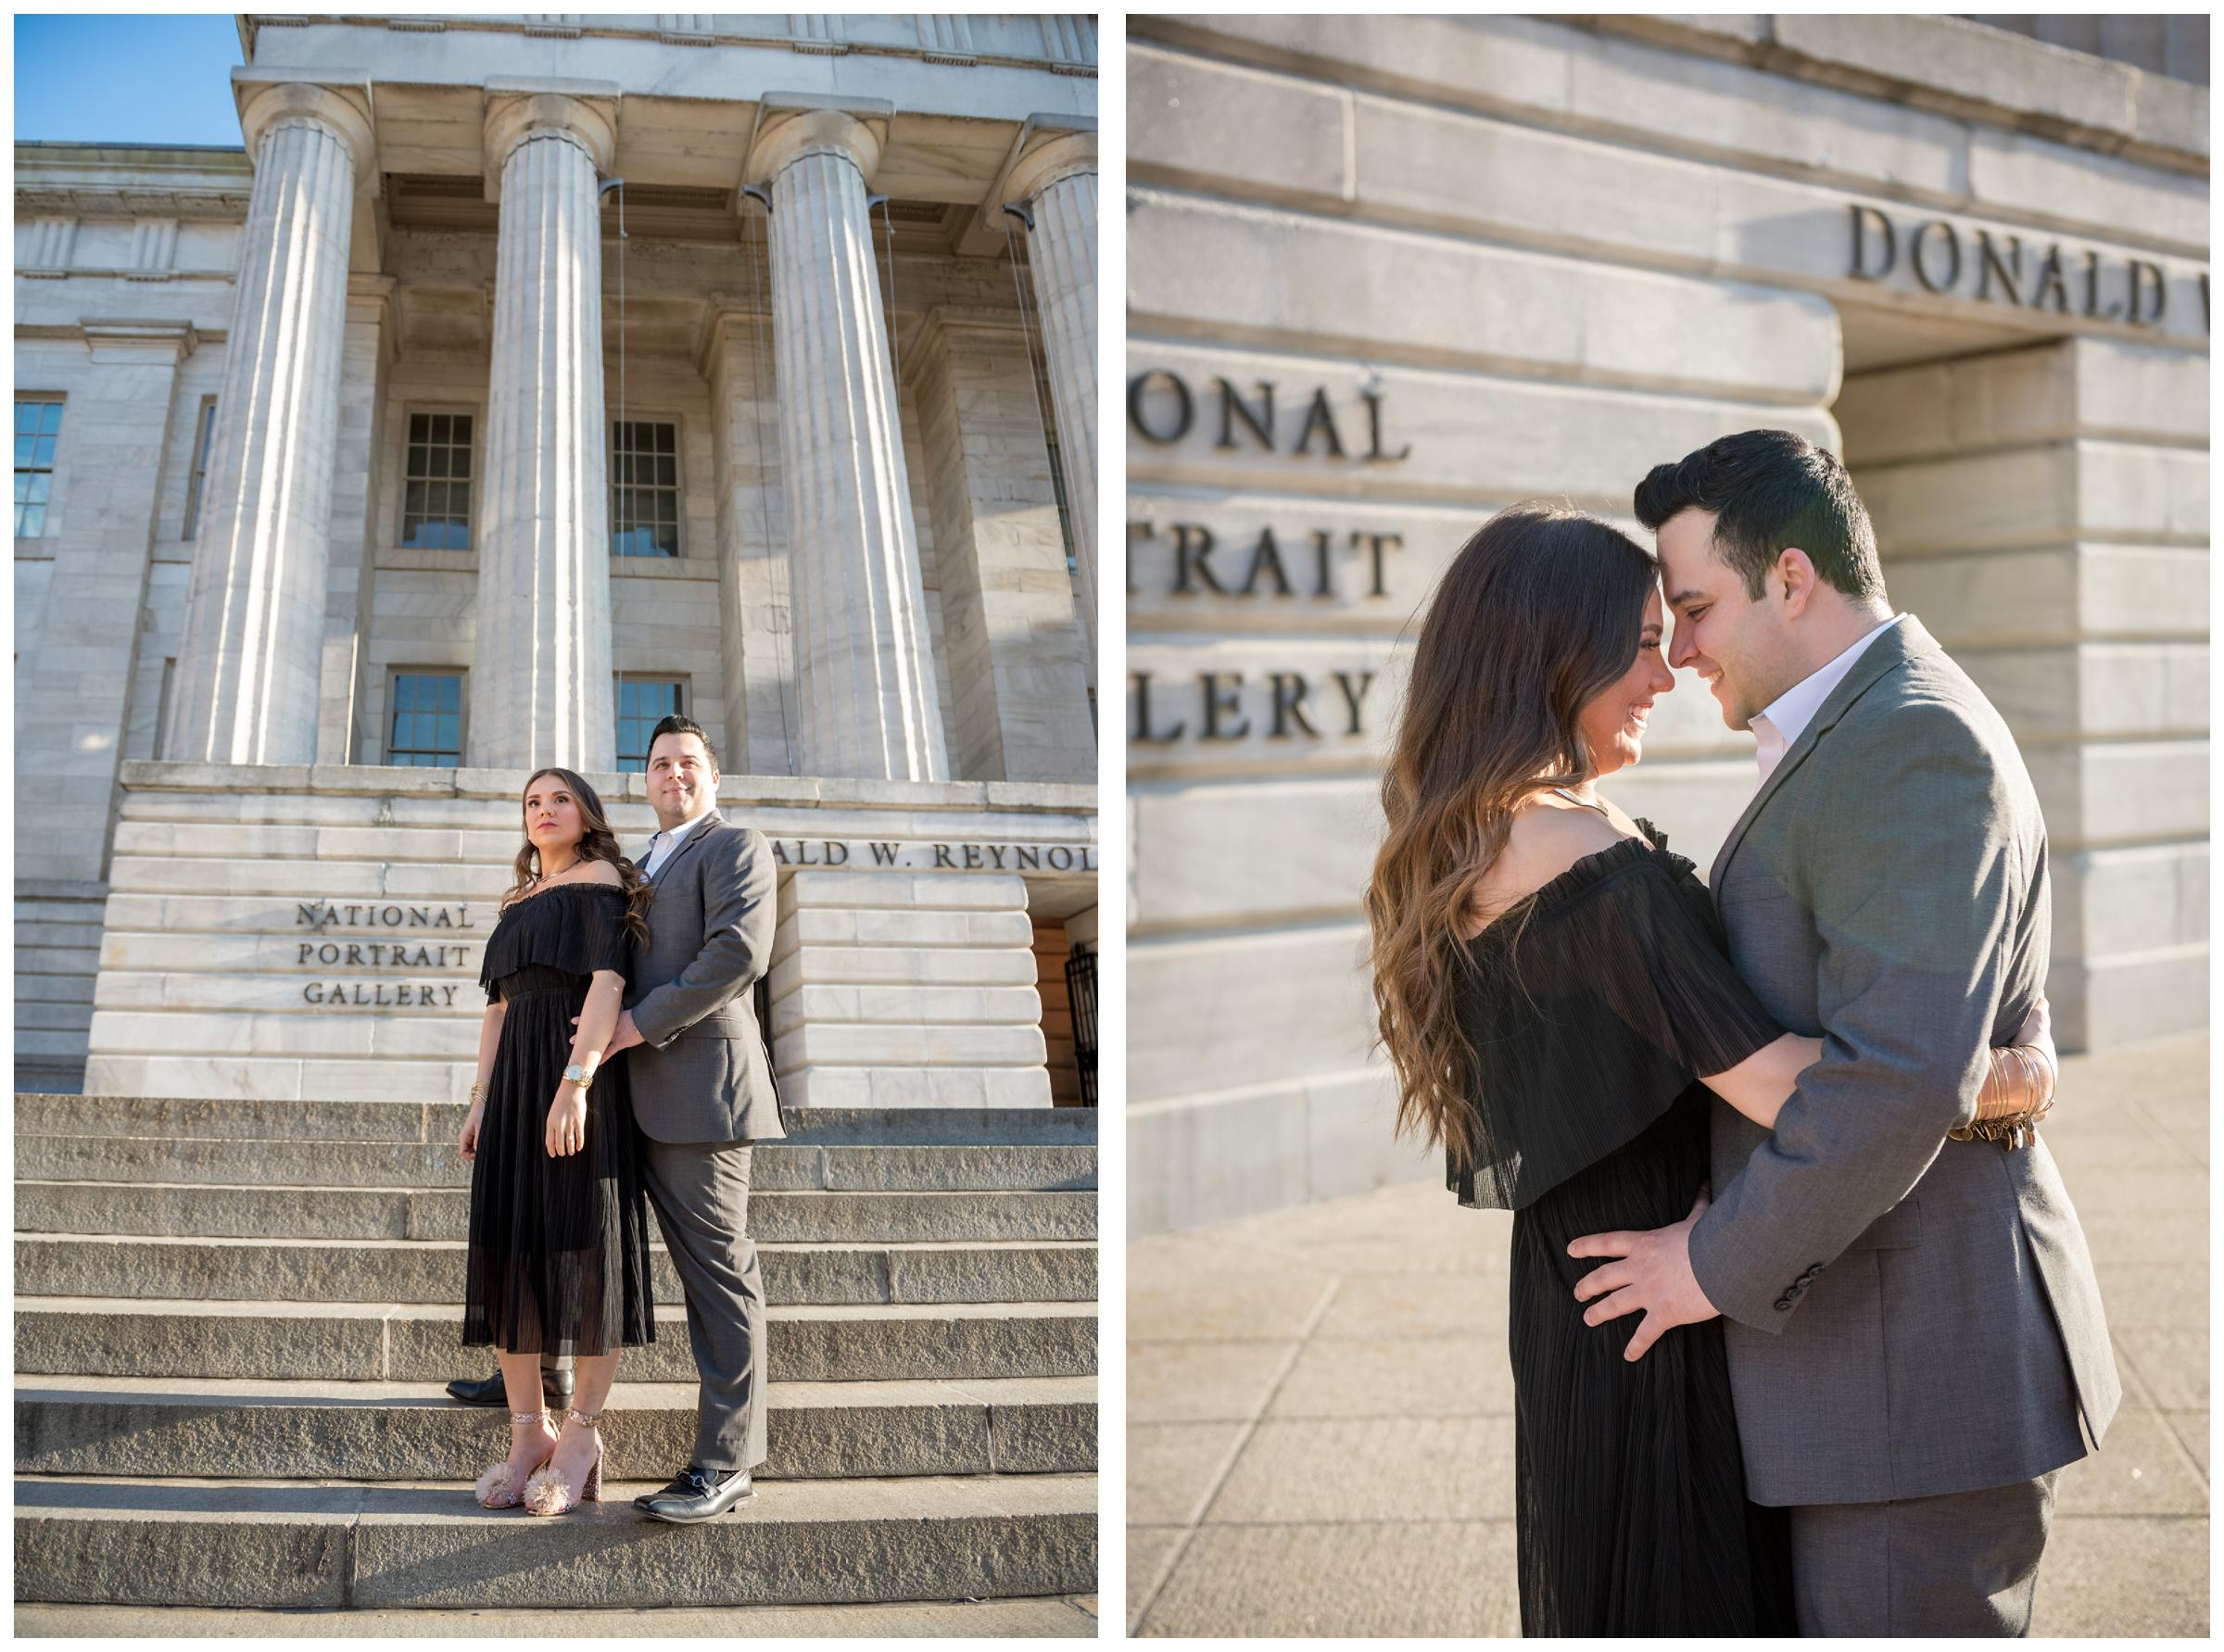 engagement photos at National Portrait Gallery in Washington, D.C.